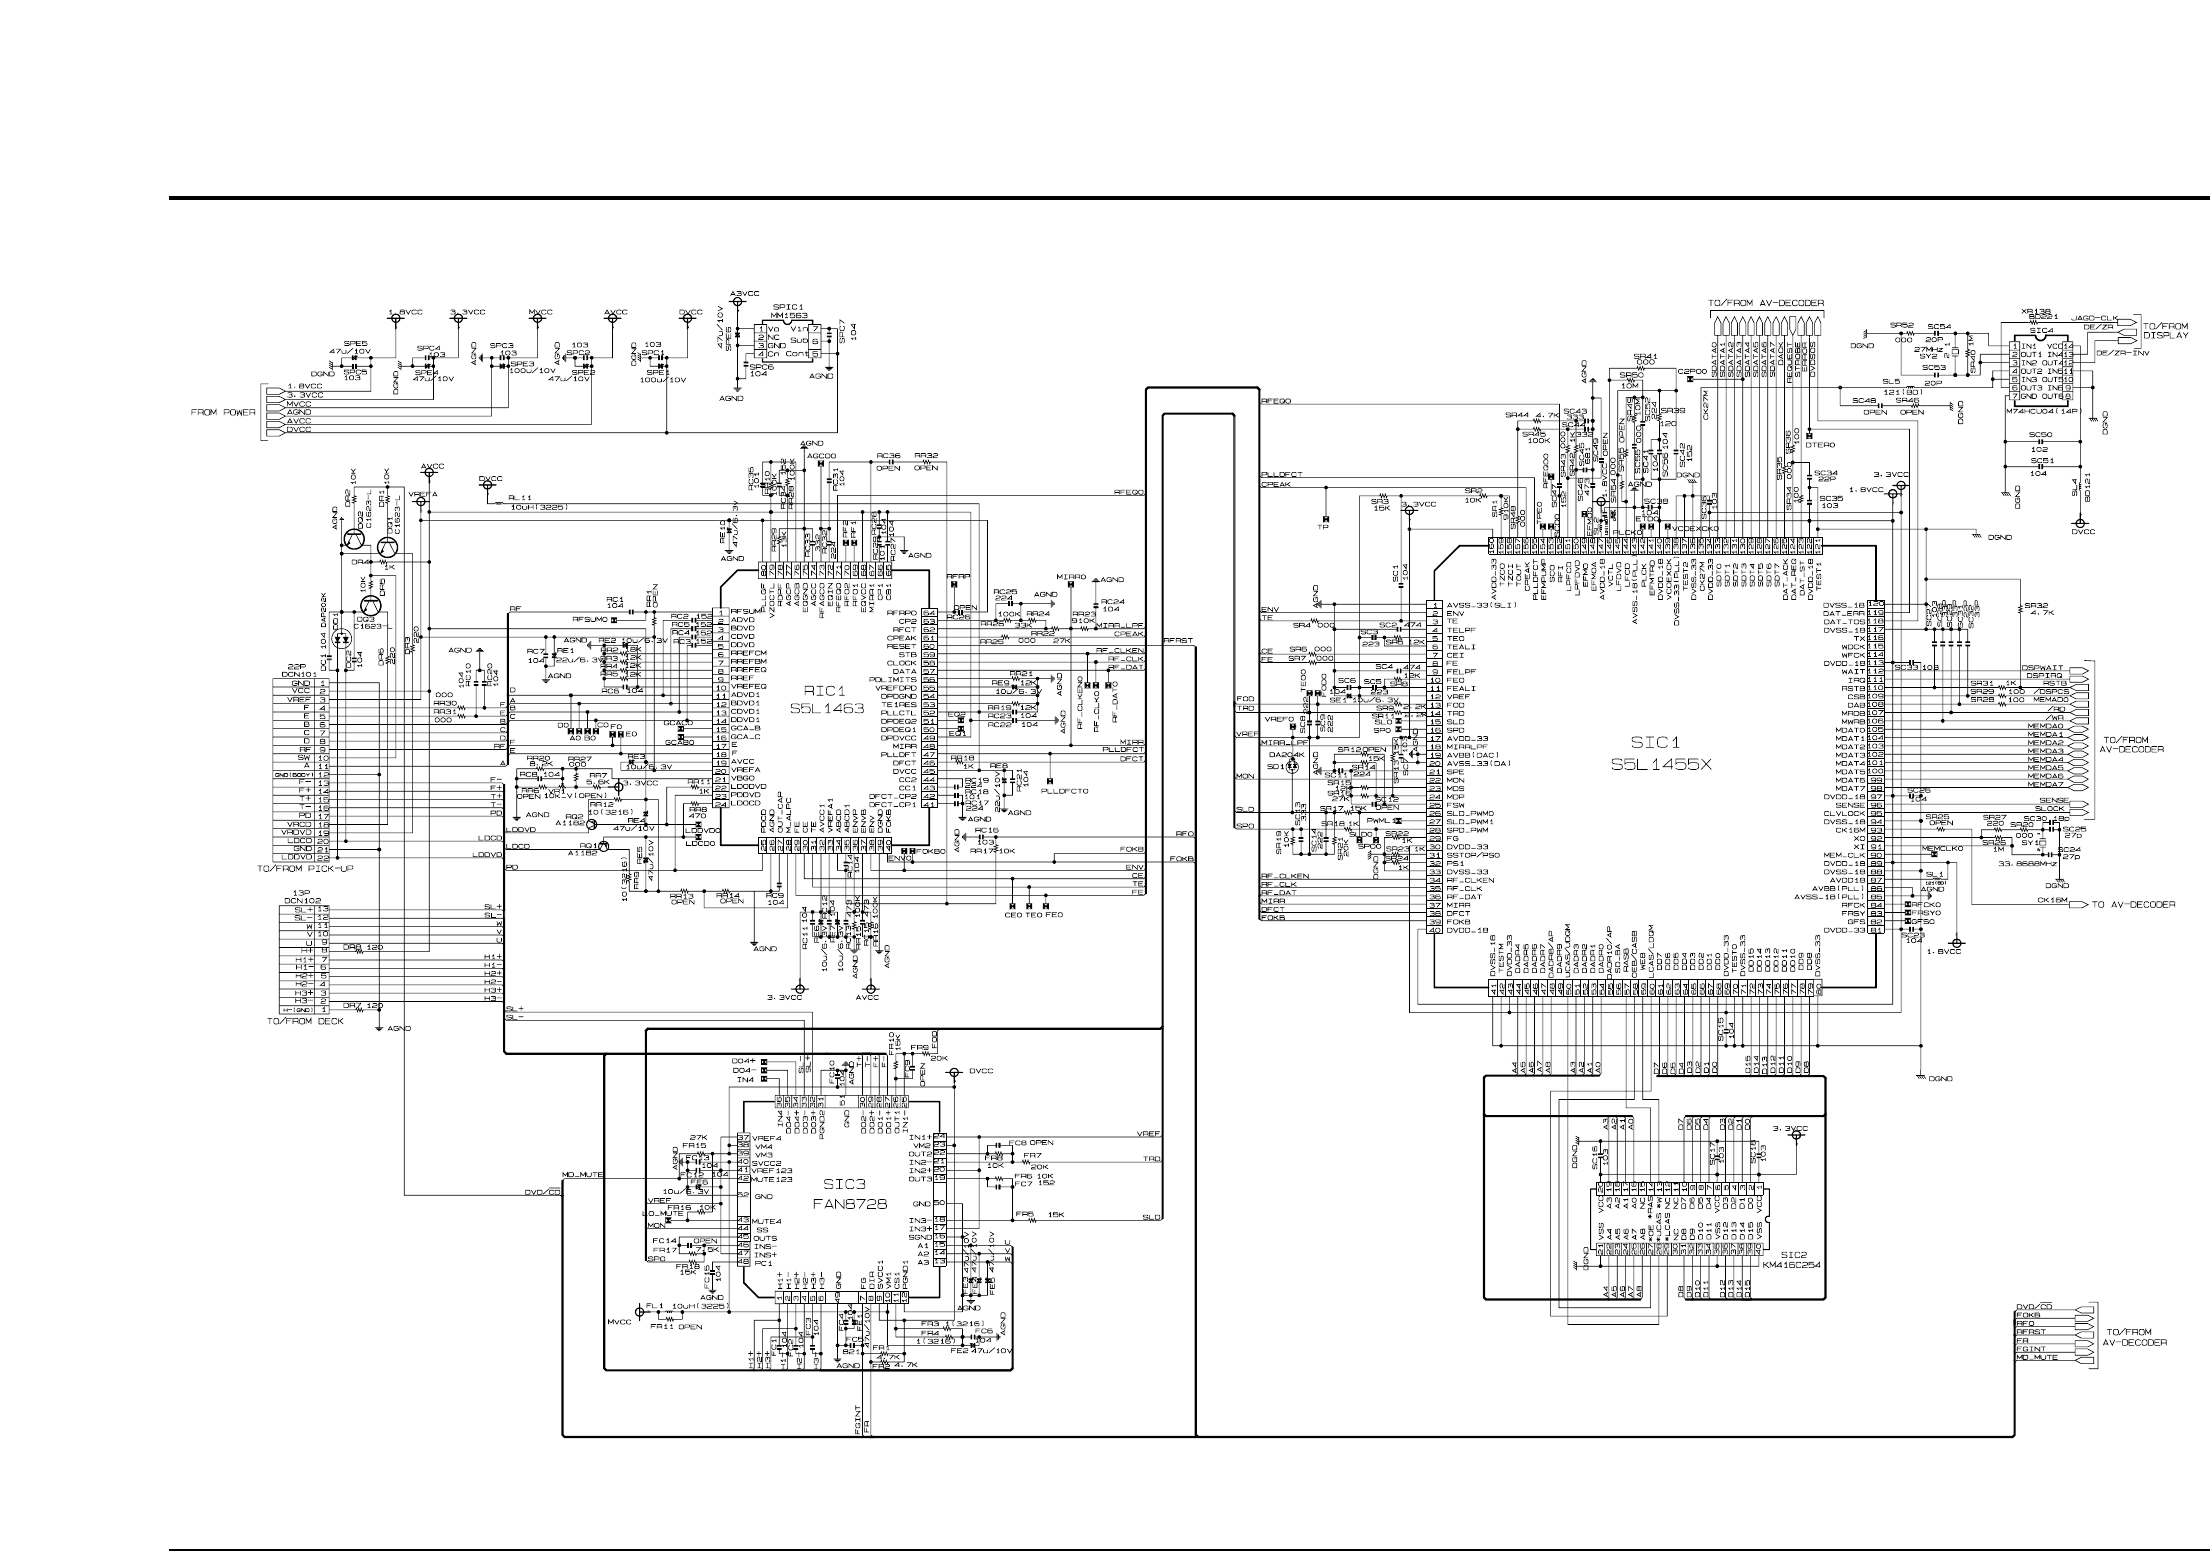 Samsung Washing Machine Circuit Diagram Datasheet